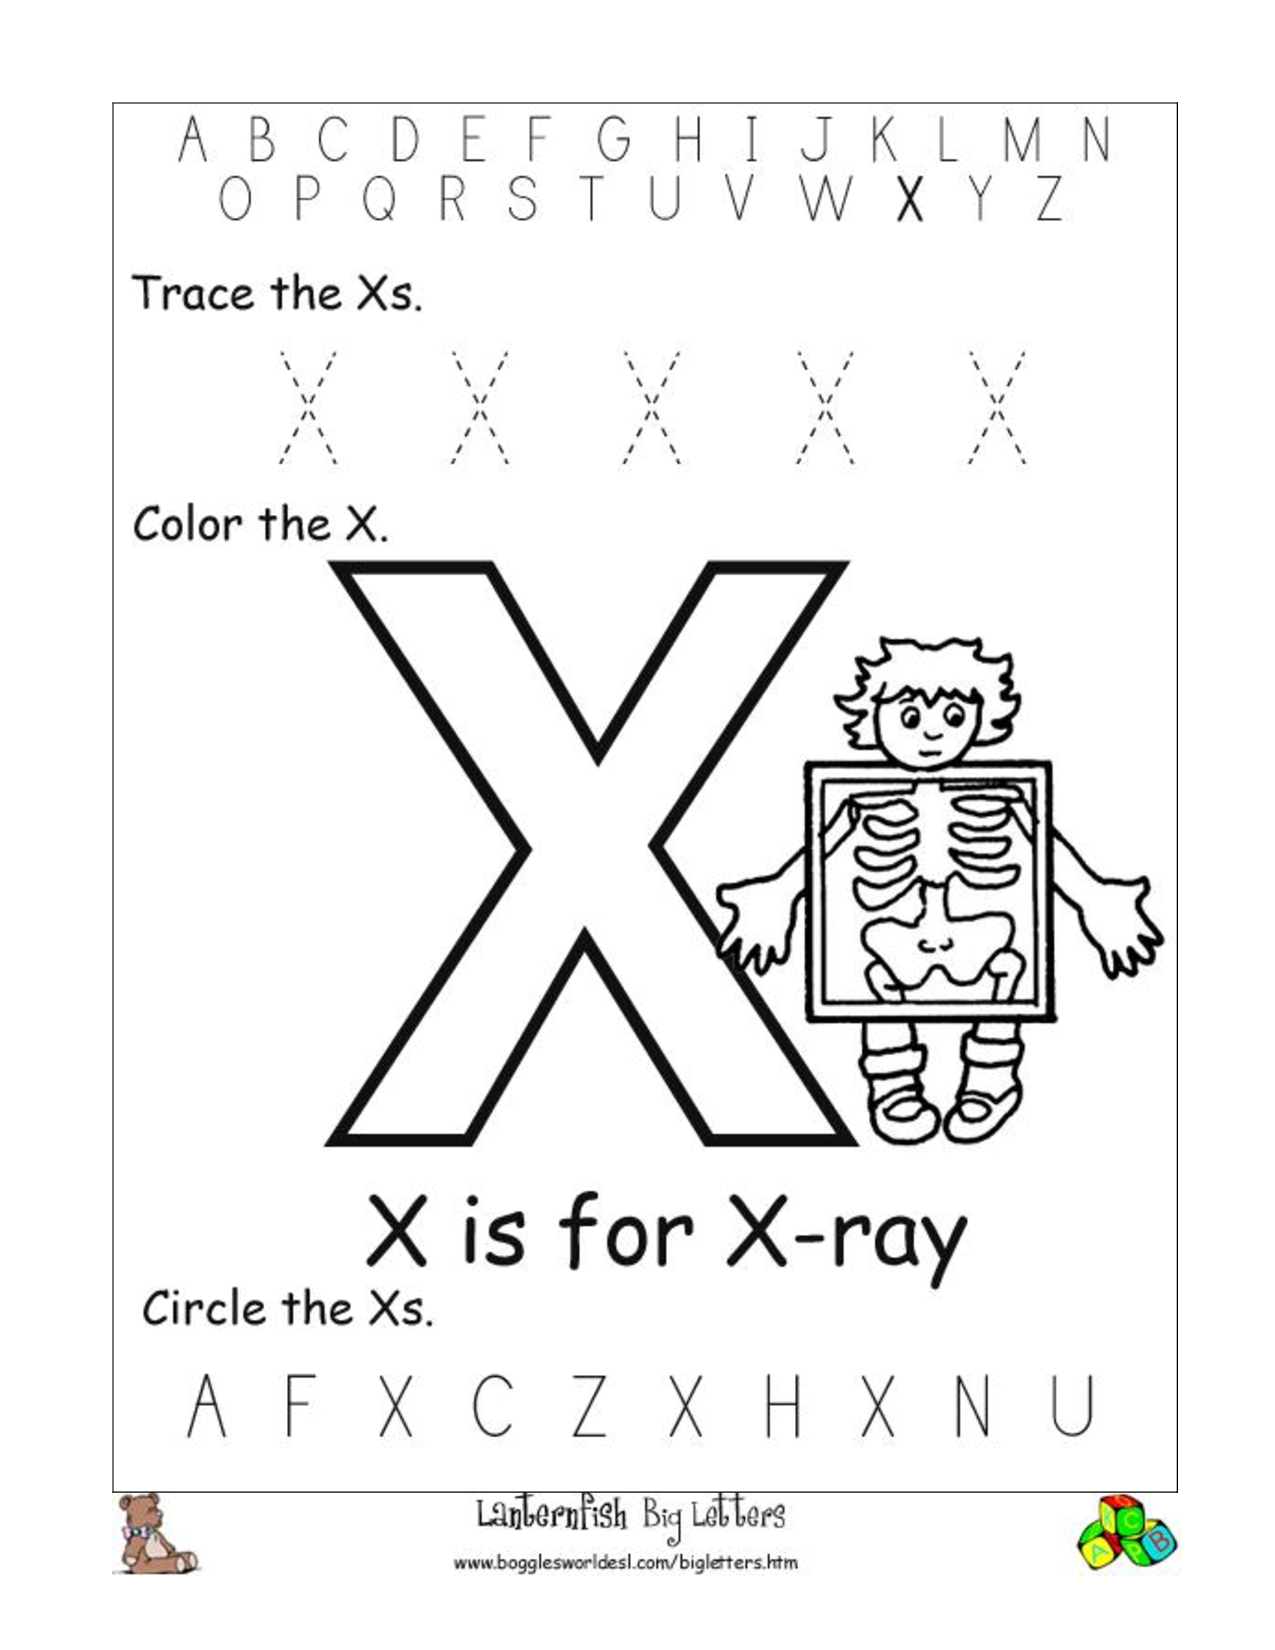 Alphabet Worksheets for Preschoolers